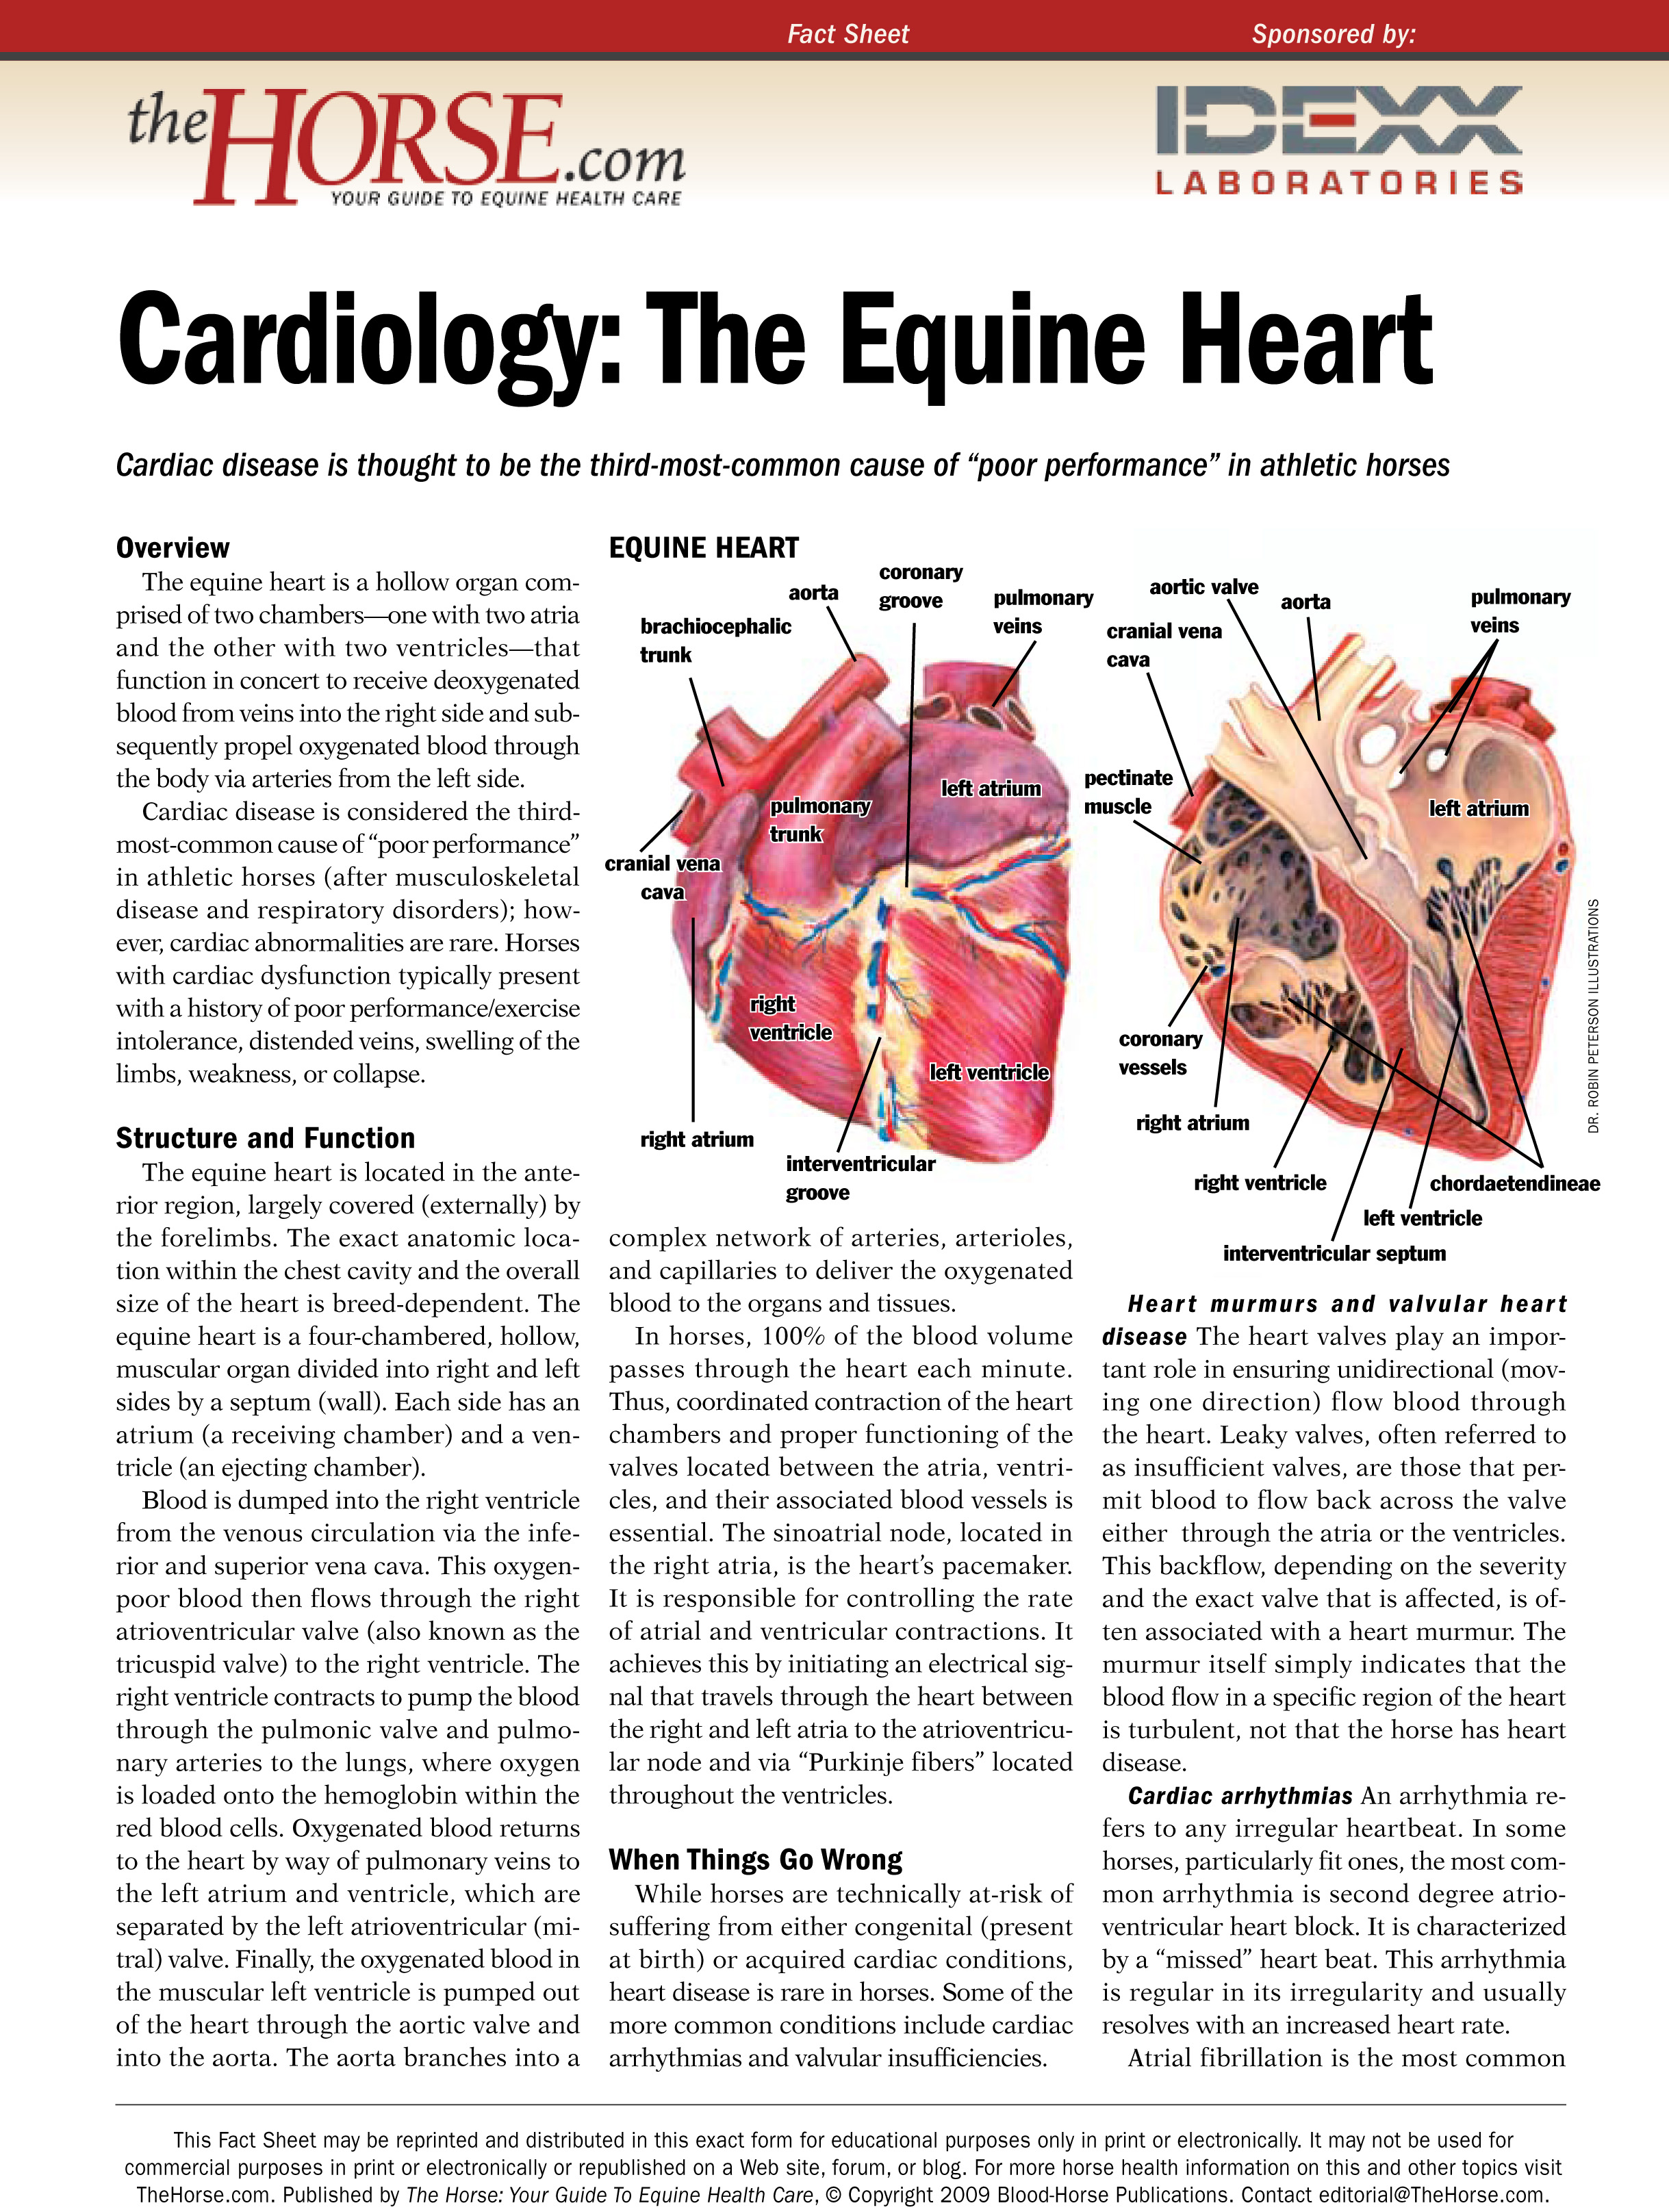 Cardiology The Equine Heart The Horse